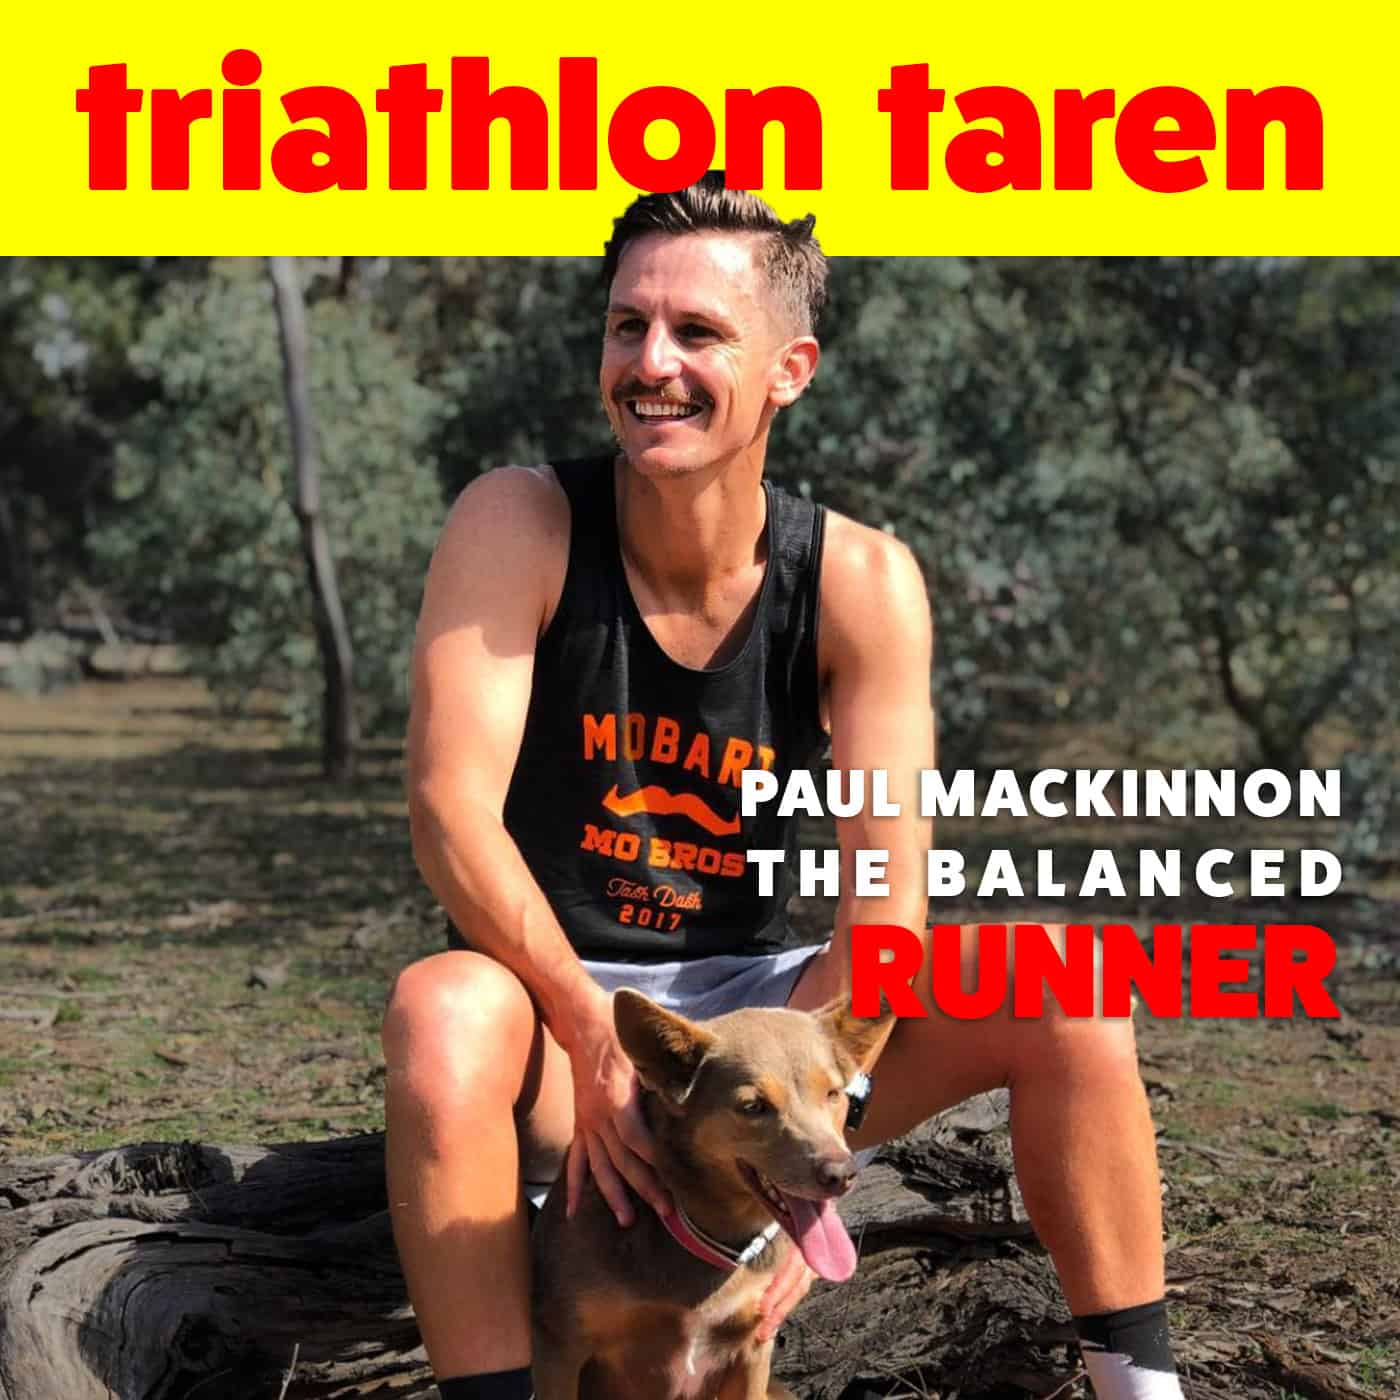 Get Faster On The Run | The Balanced Runner, Paul MacKinnon